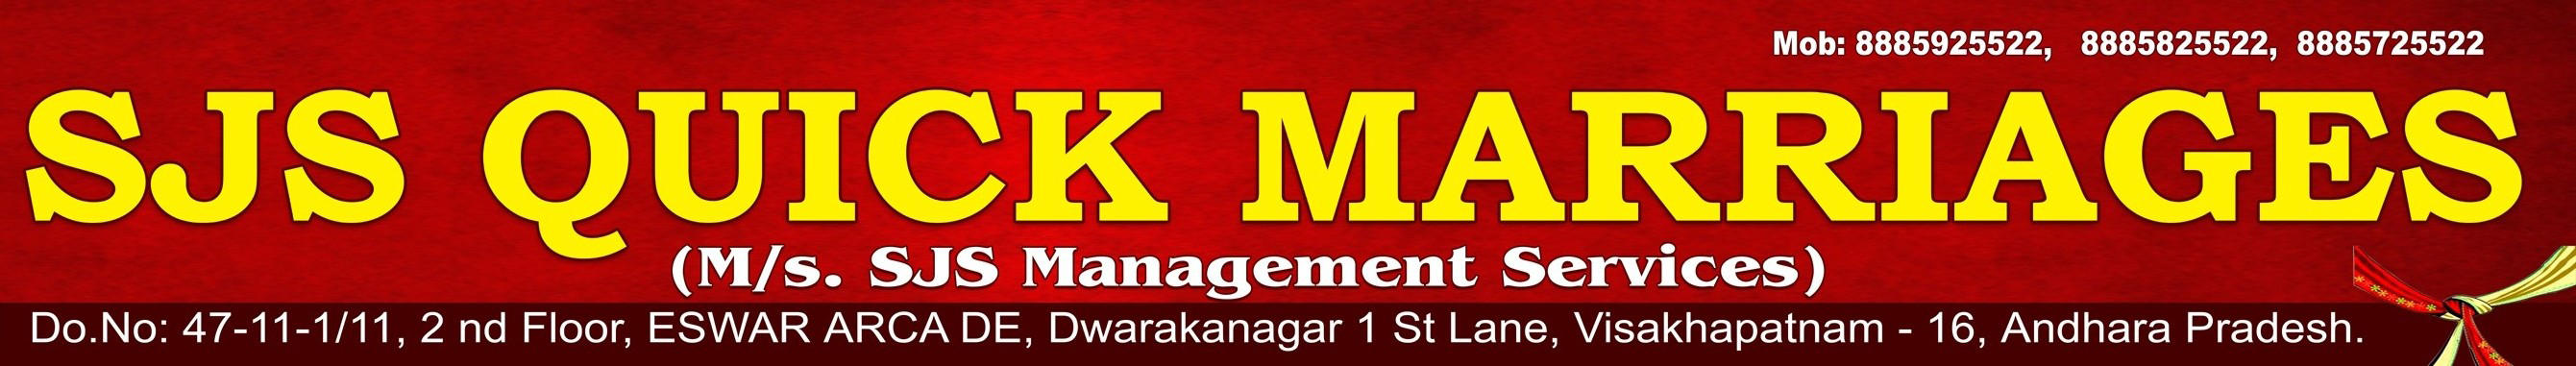 quick marriages login